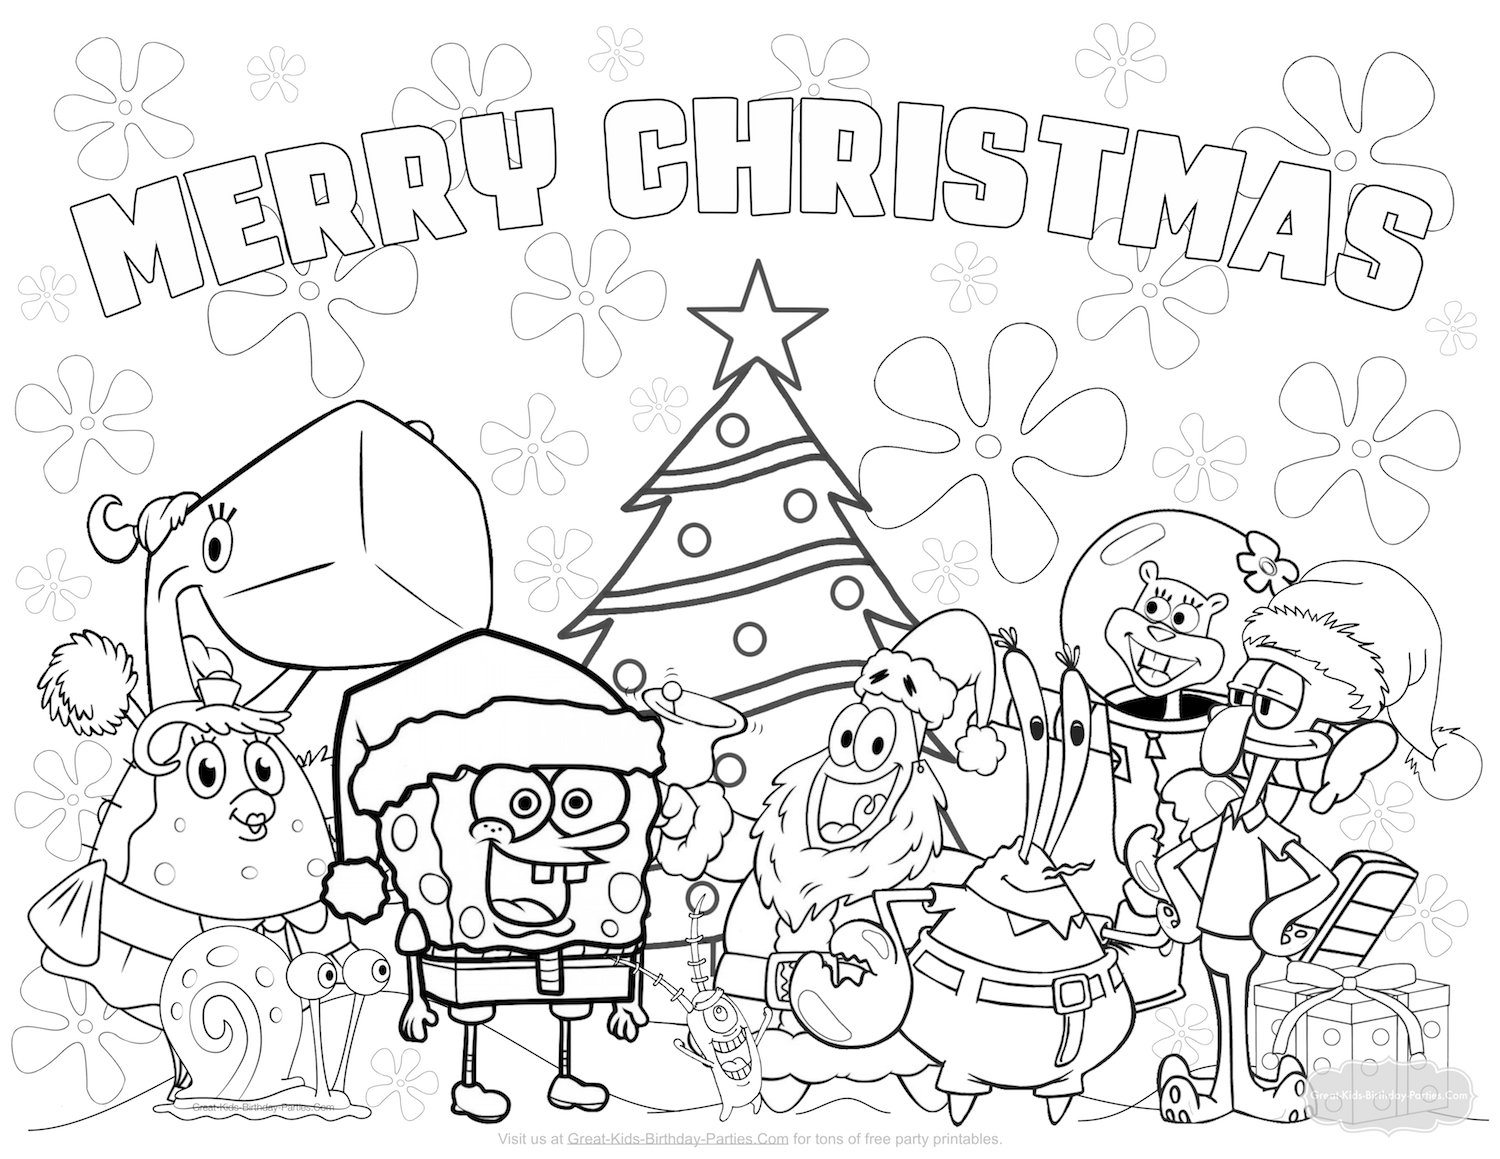 istmas coloring pages - photo#32